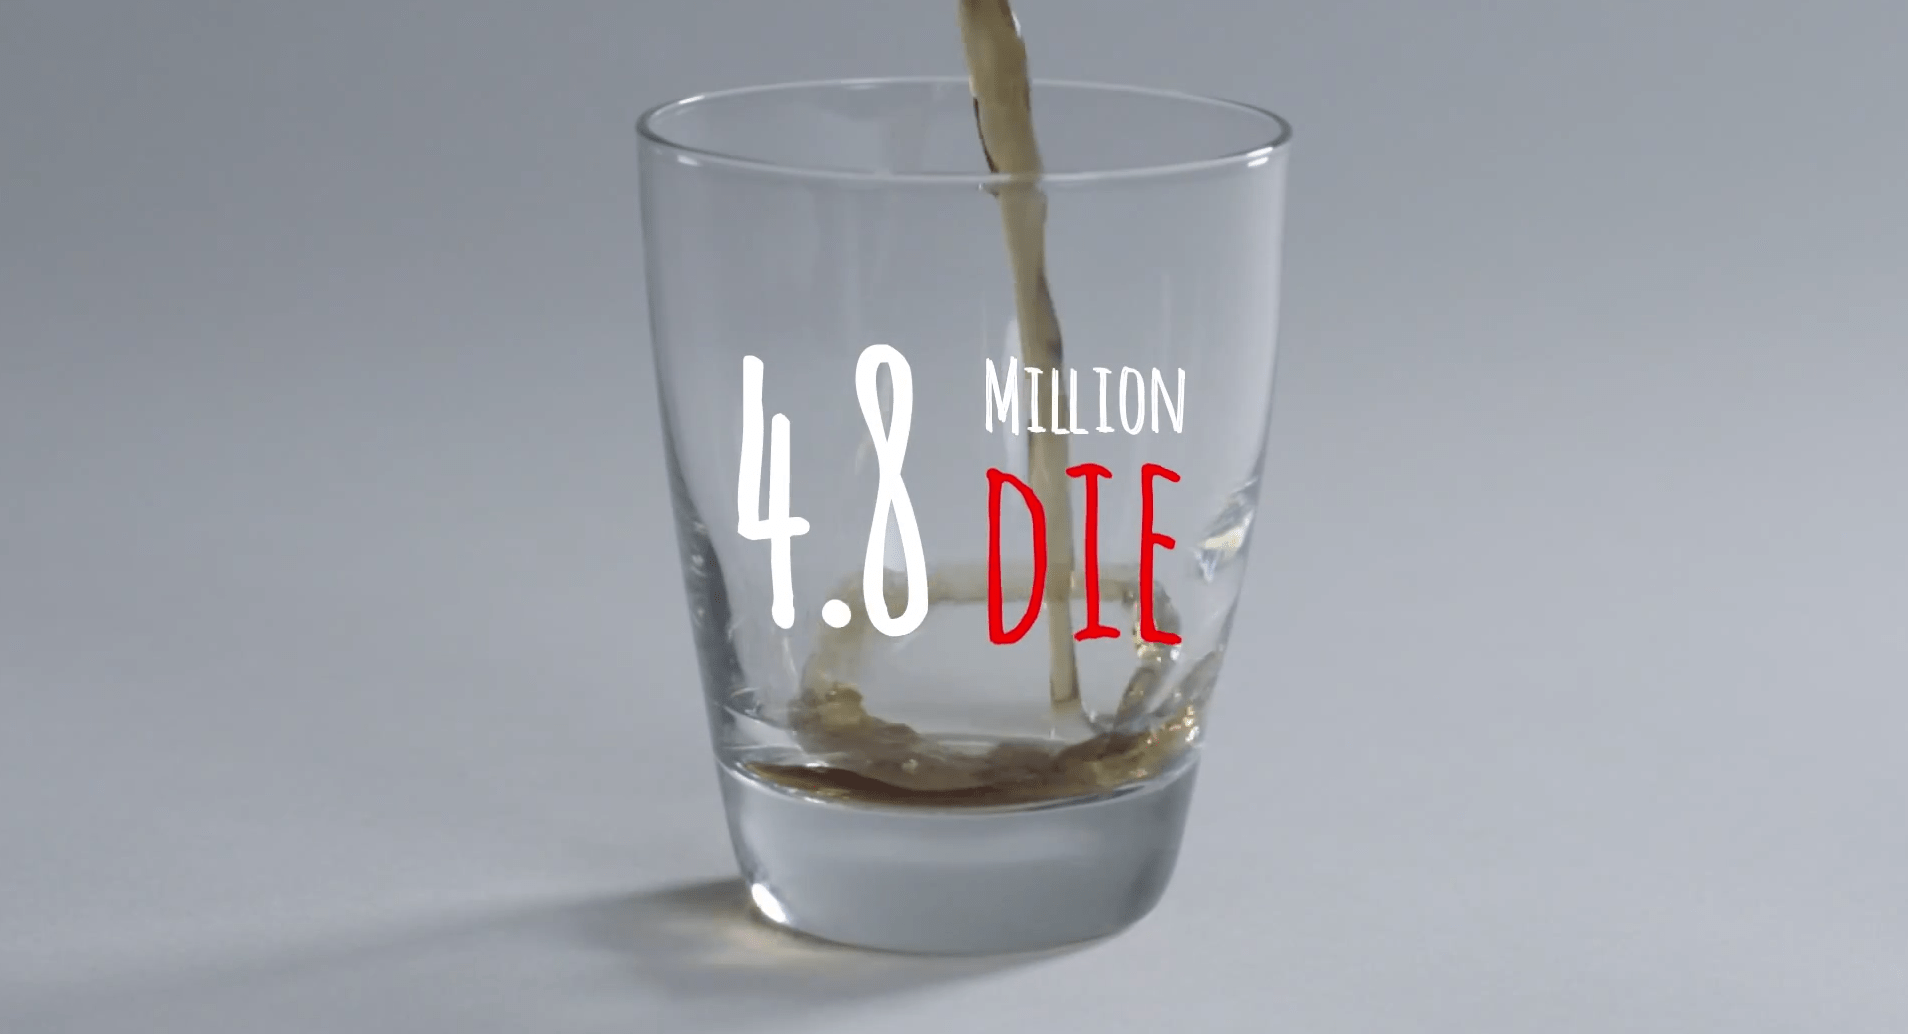 4.8 million die of the chronic disease every year.